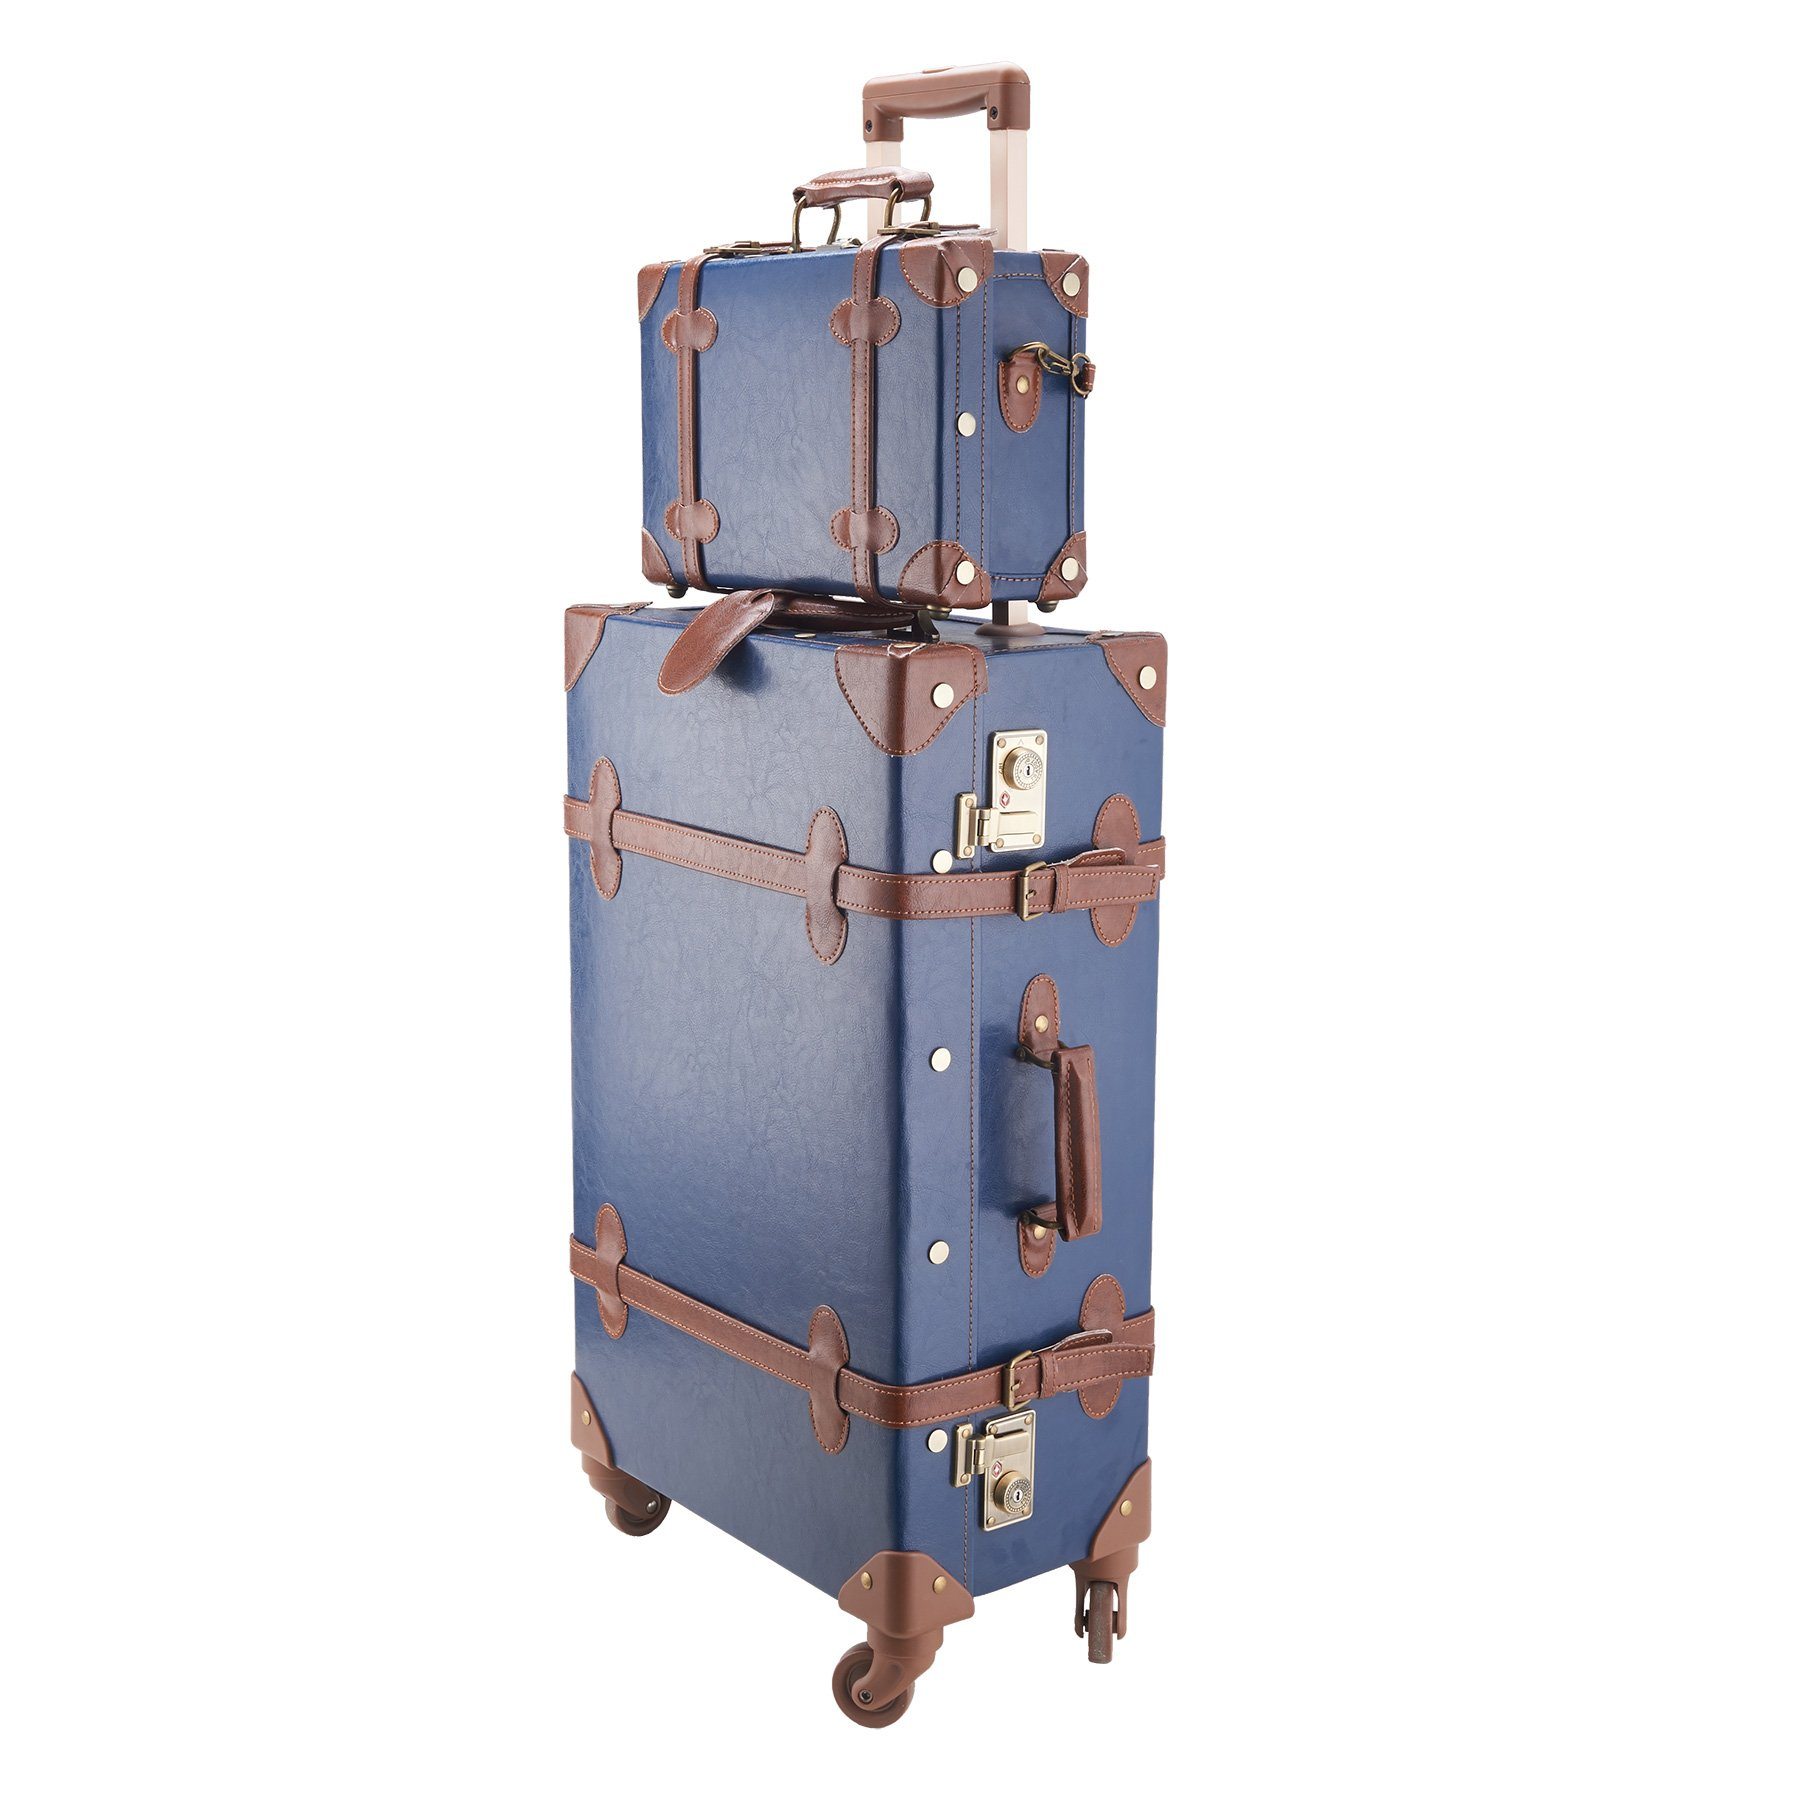 CO-Z Premium Vintage Luggage Sets 24'' Trolley Suitcase and 12'' Hand Bag Set with TSA Locks (Pink + Beige) (12'' +24'' Blue) by CO-Z